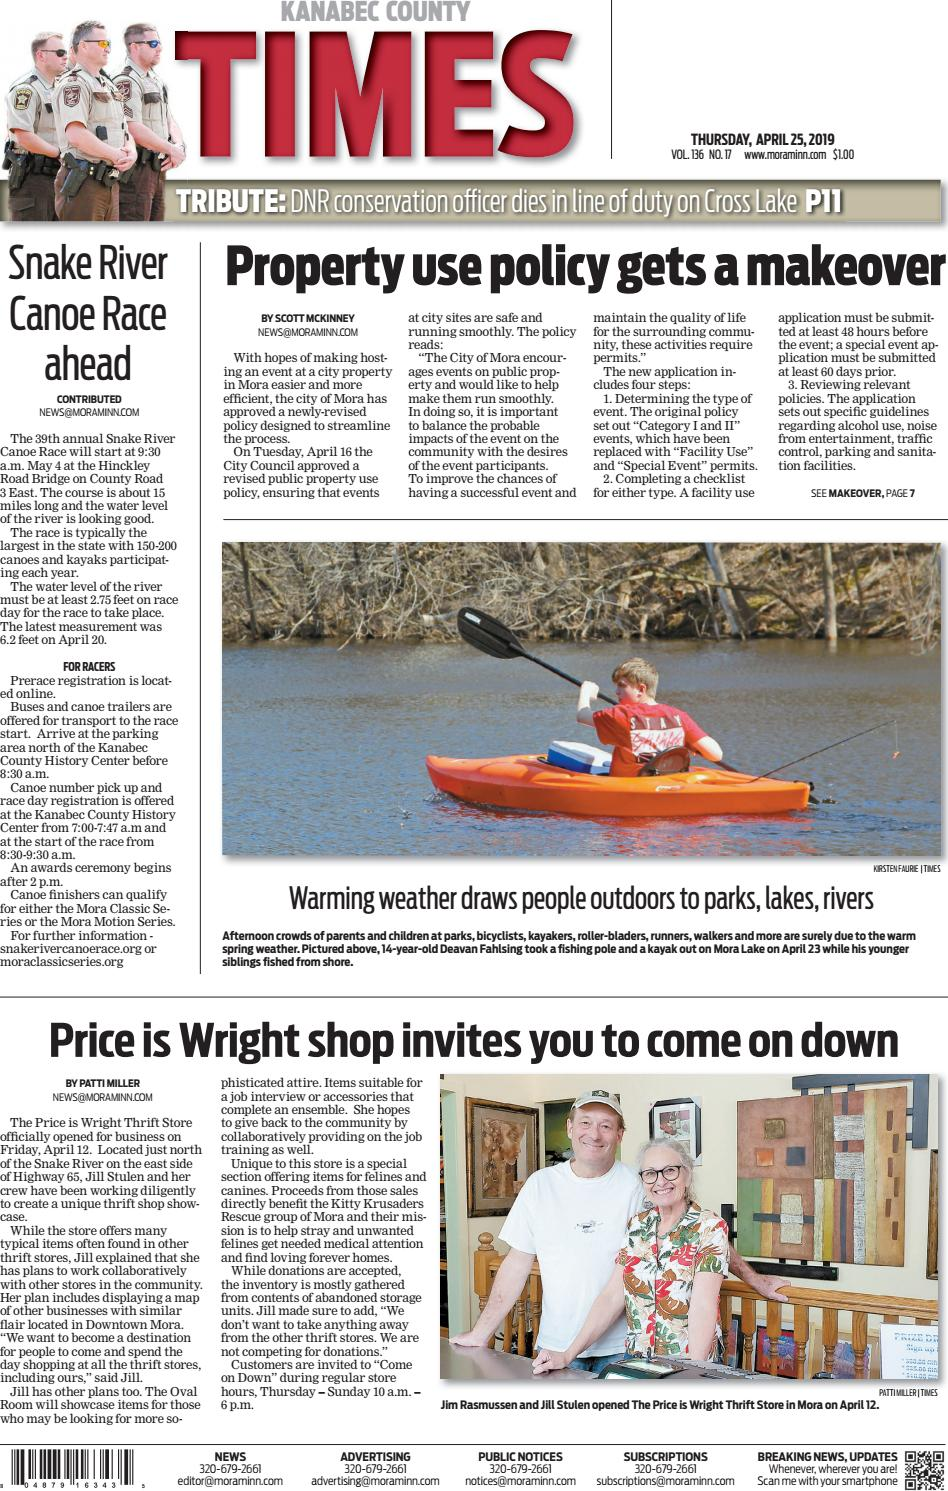 Kanabec County Times e-edition April 25, 2019